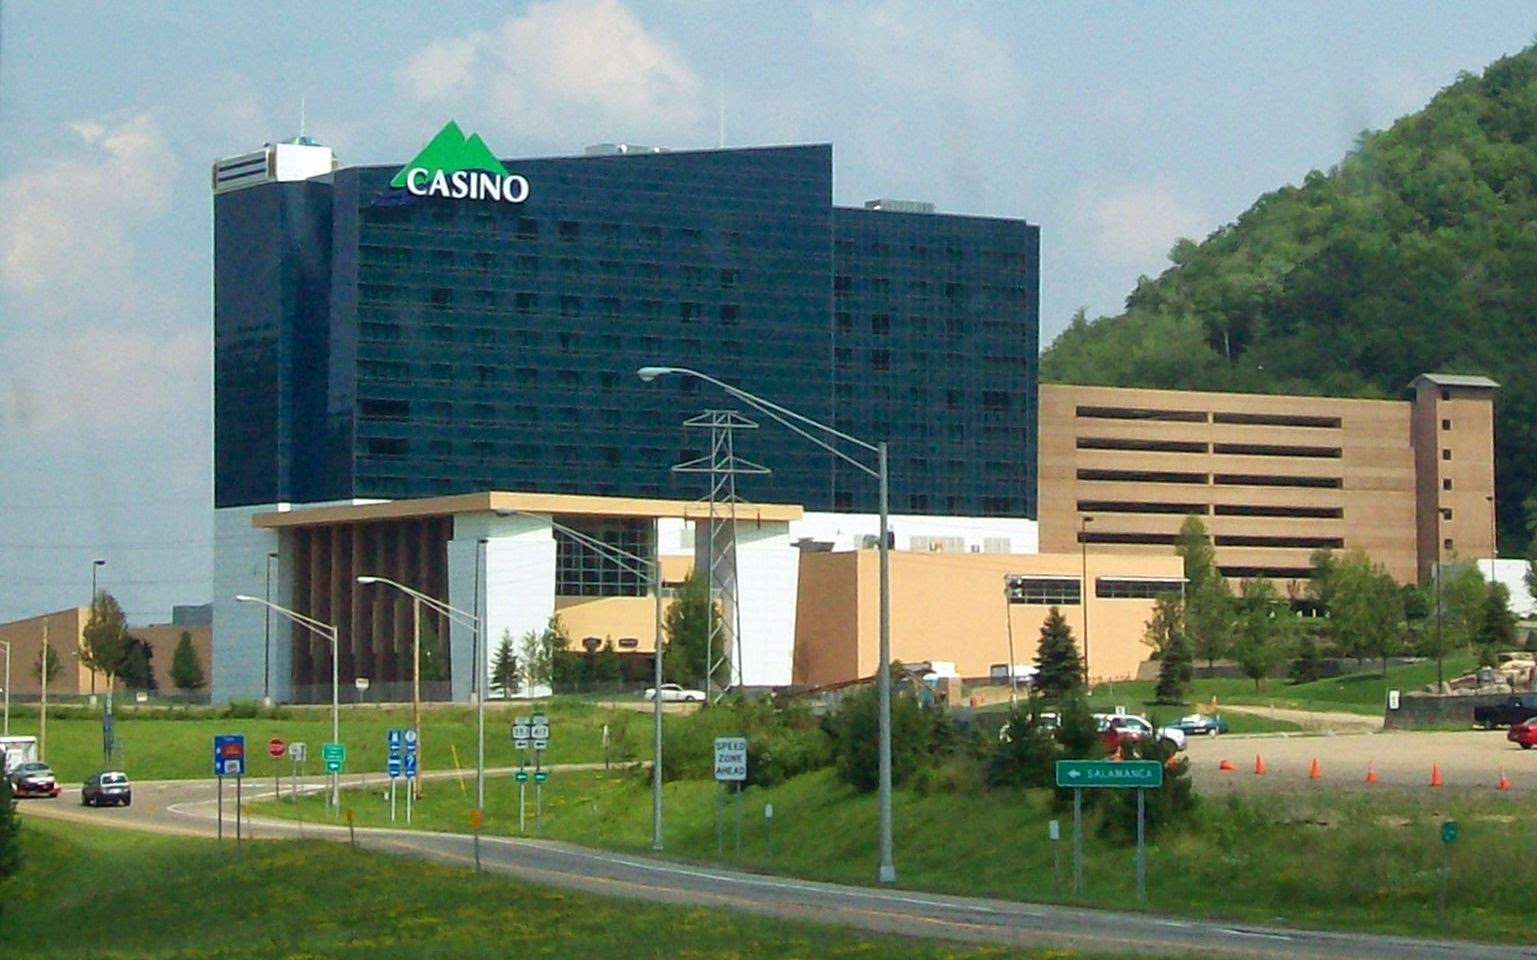 Seneca allegheny casino in the pointe casino